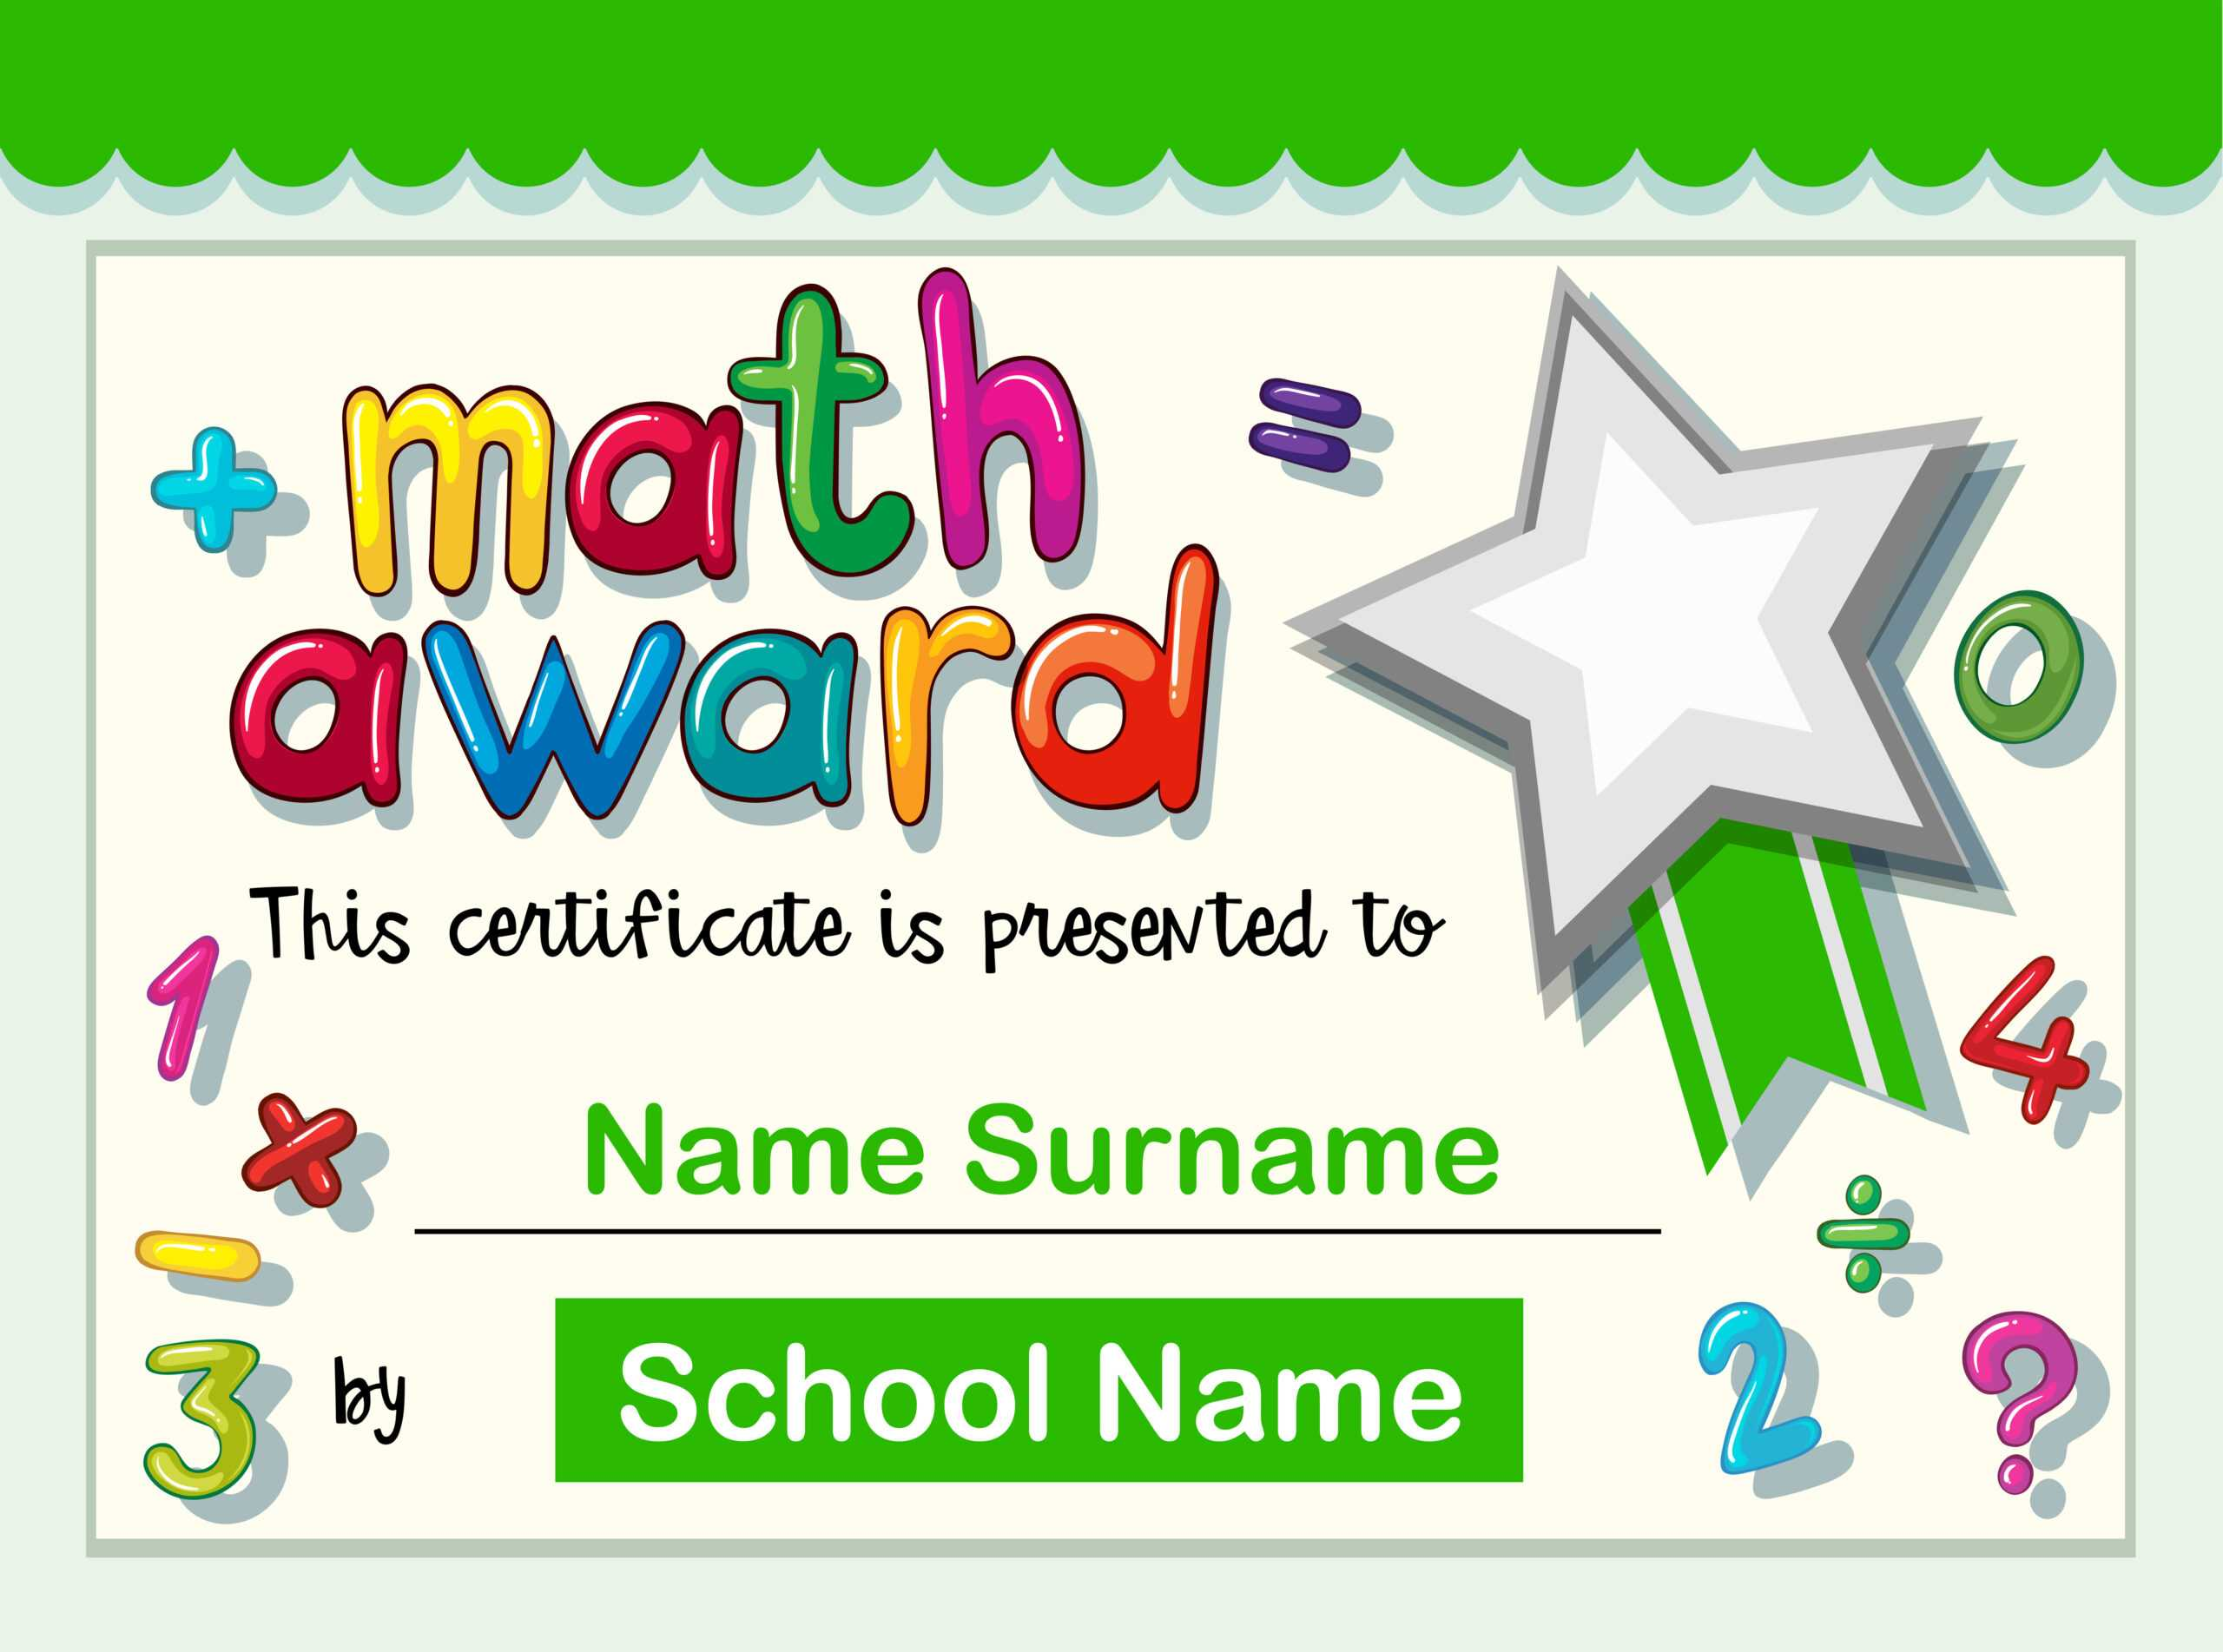 Certificate Template For Math Award - Download Free Vectors For Math Certificate Template